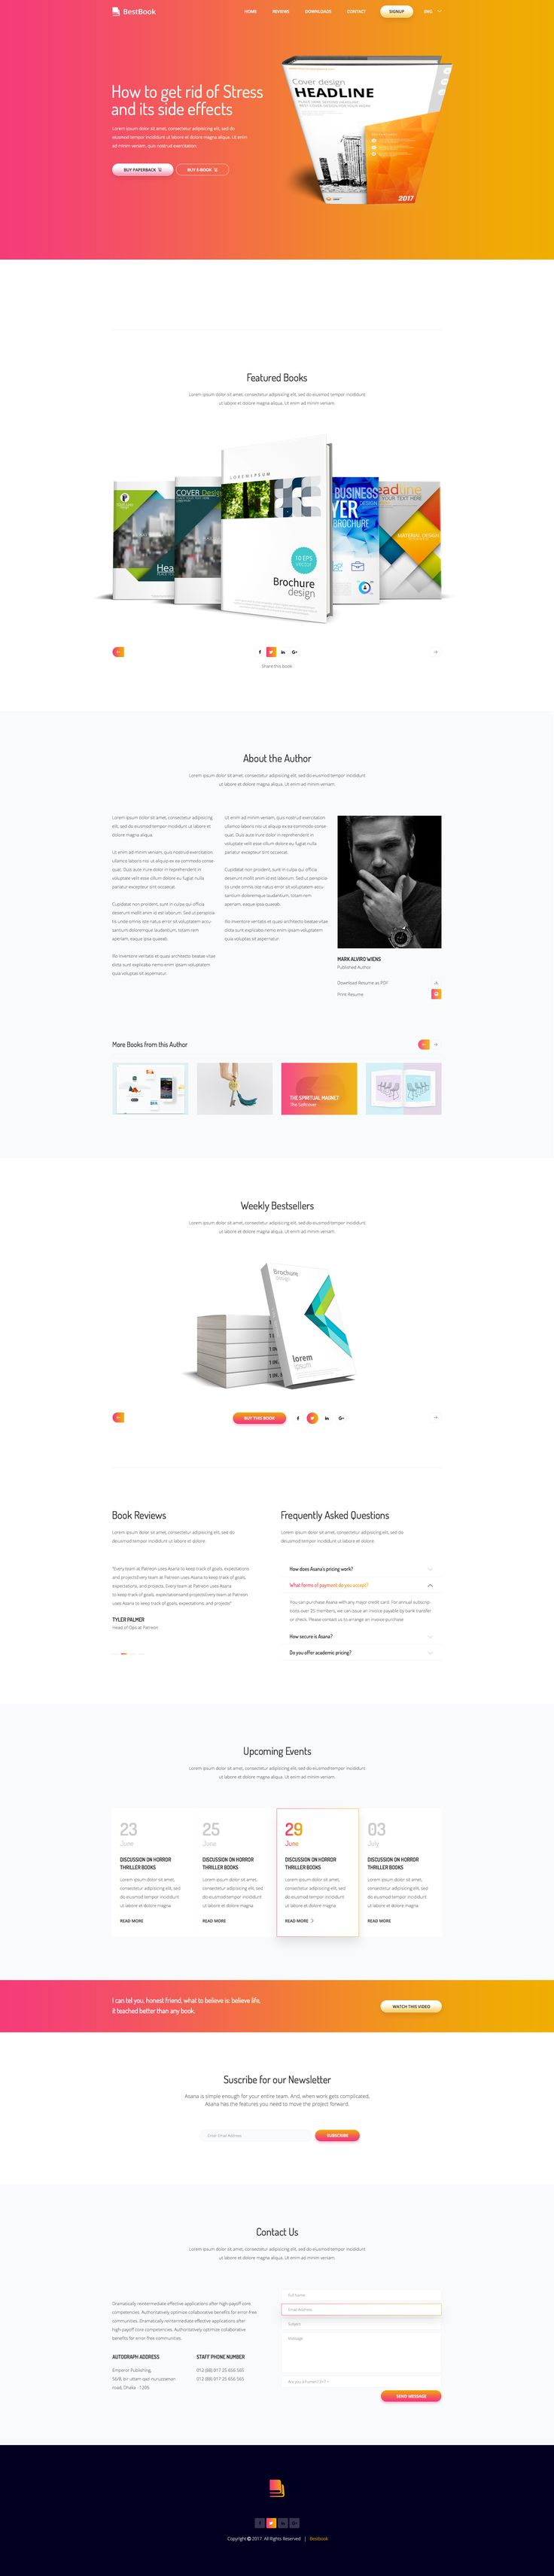 Bestbook - Book Author & Marketers Landing Page PSD Template #simple #story #unique • Download ➝ https://themeforest.net/item/bestbook-book-author-marketers-landing-page-psd-template/20205831?ref=pxcr